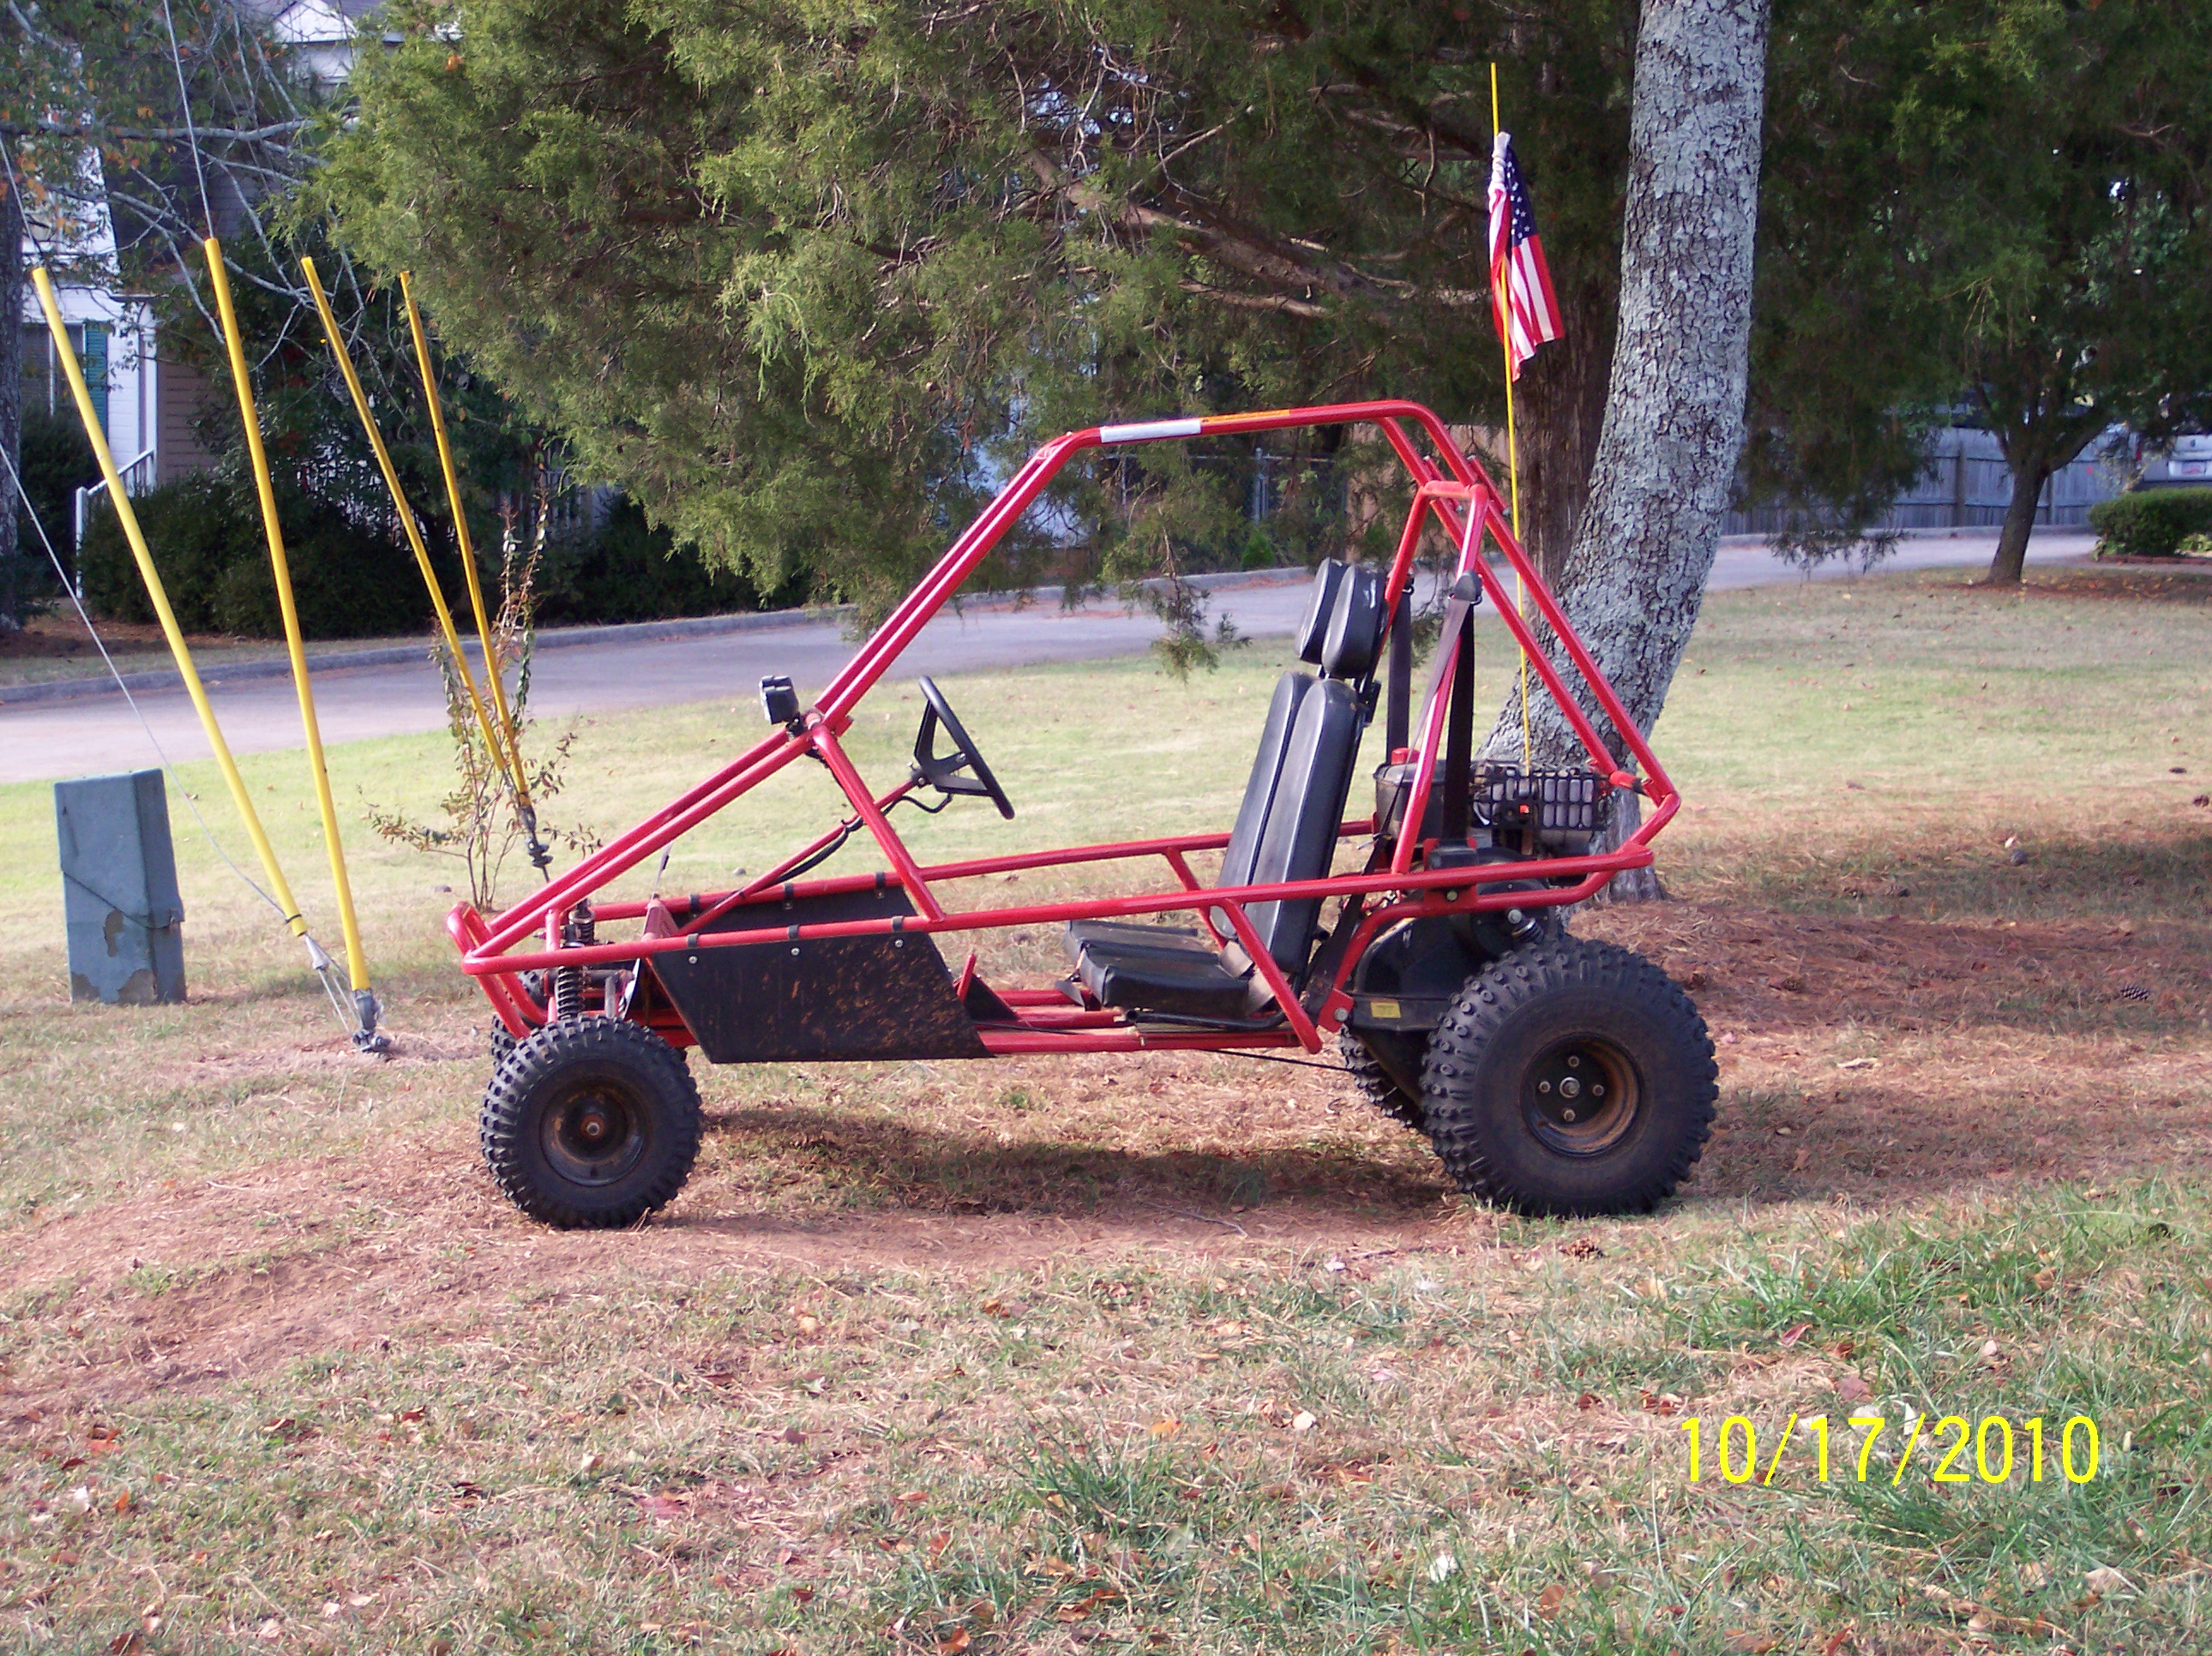 Off Road Go Kart Suspension http://teamtac.org/e107/e107_plugins/forum/forum_viewtopic.php?55522